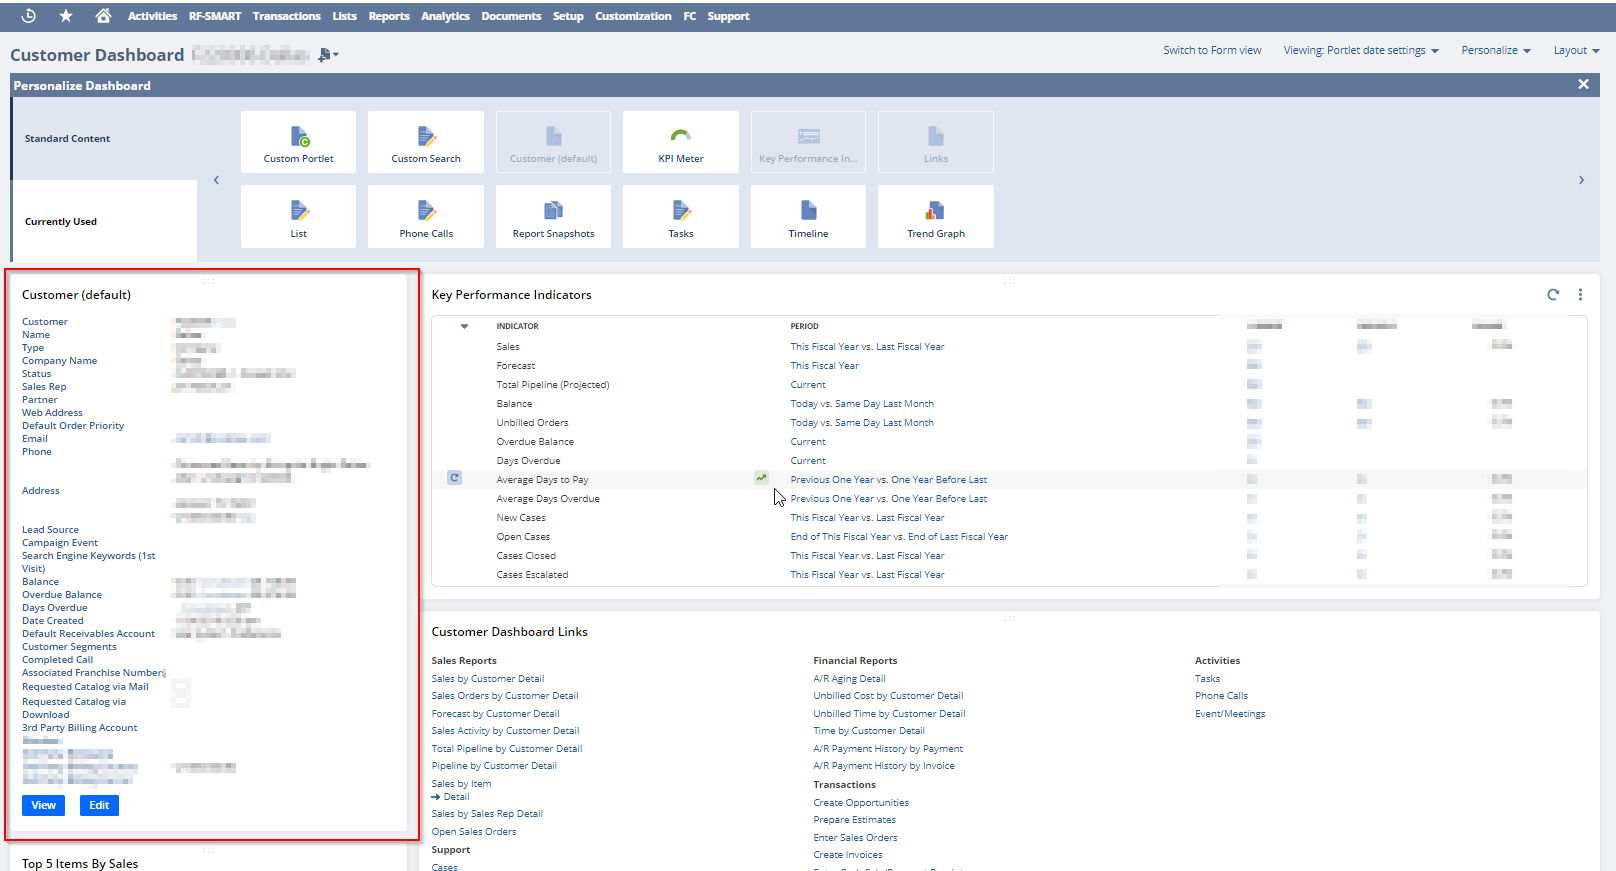 How to add fields to the Customer(default) portlet for the Customer Dashboard?